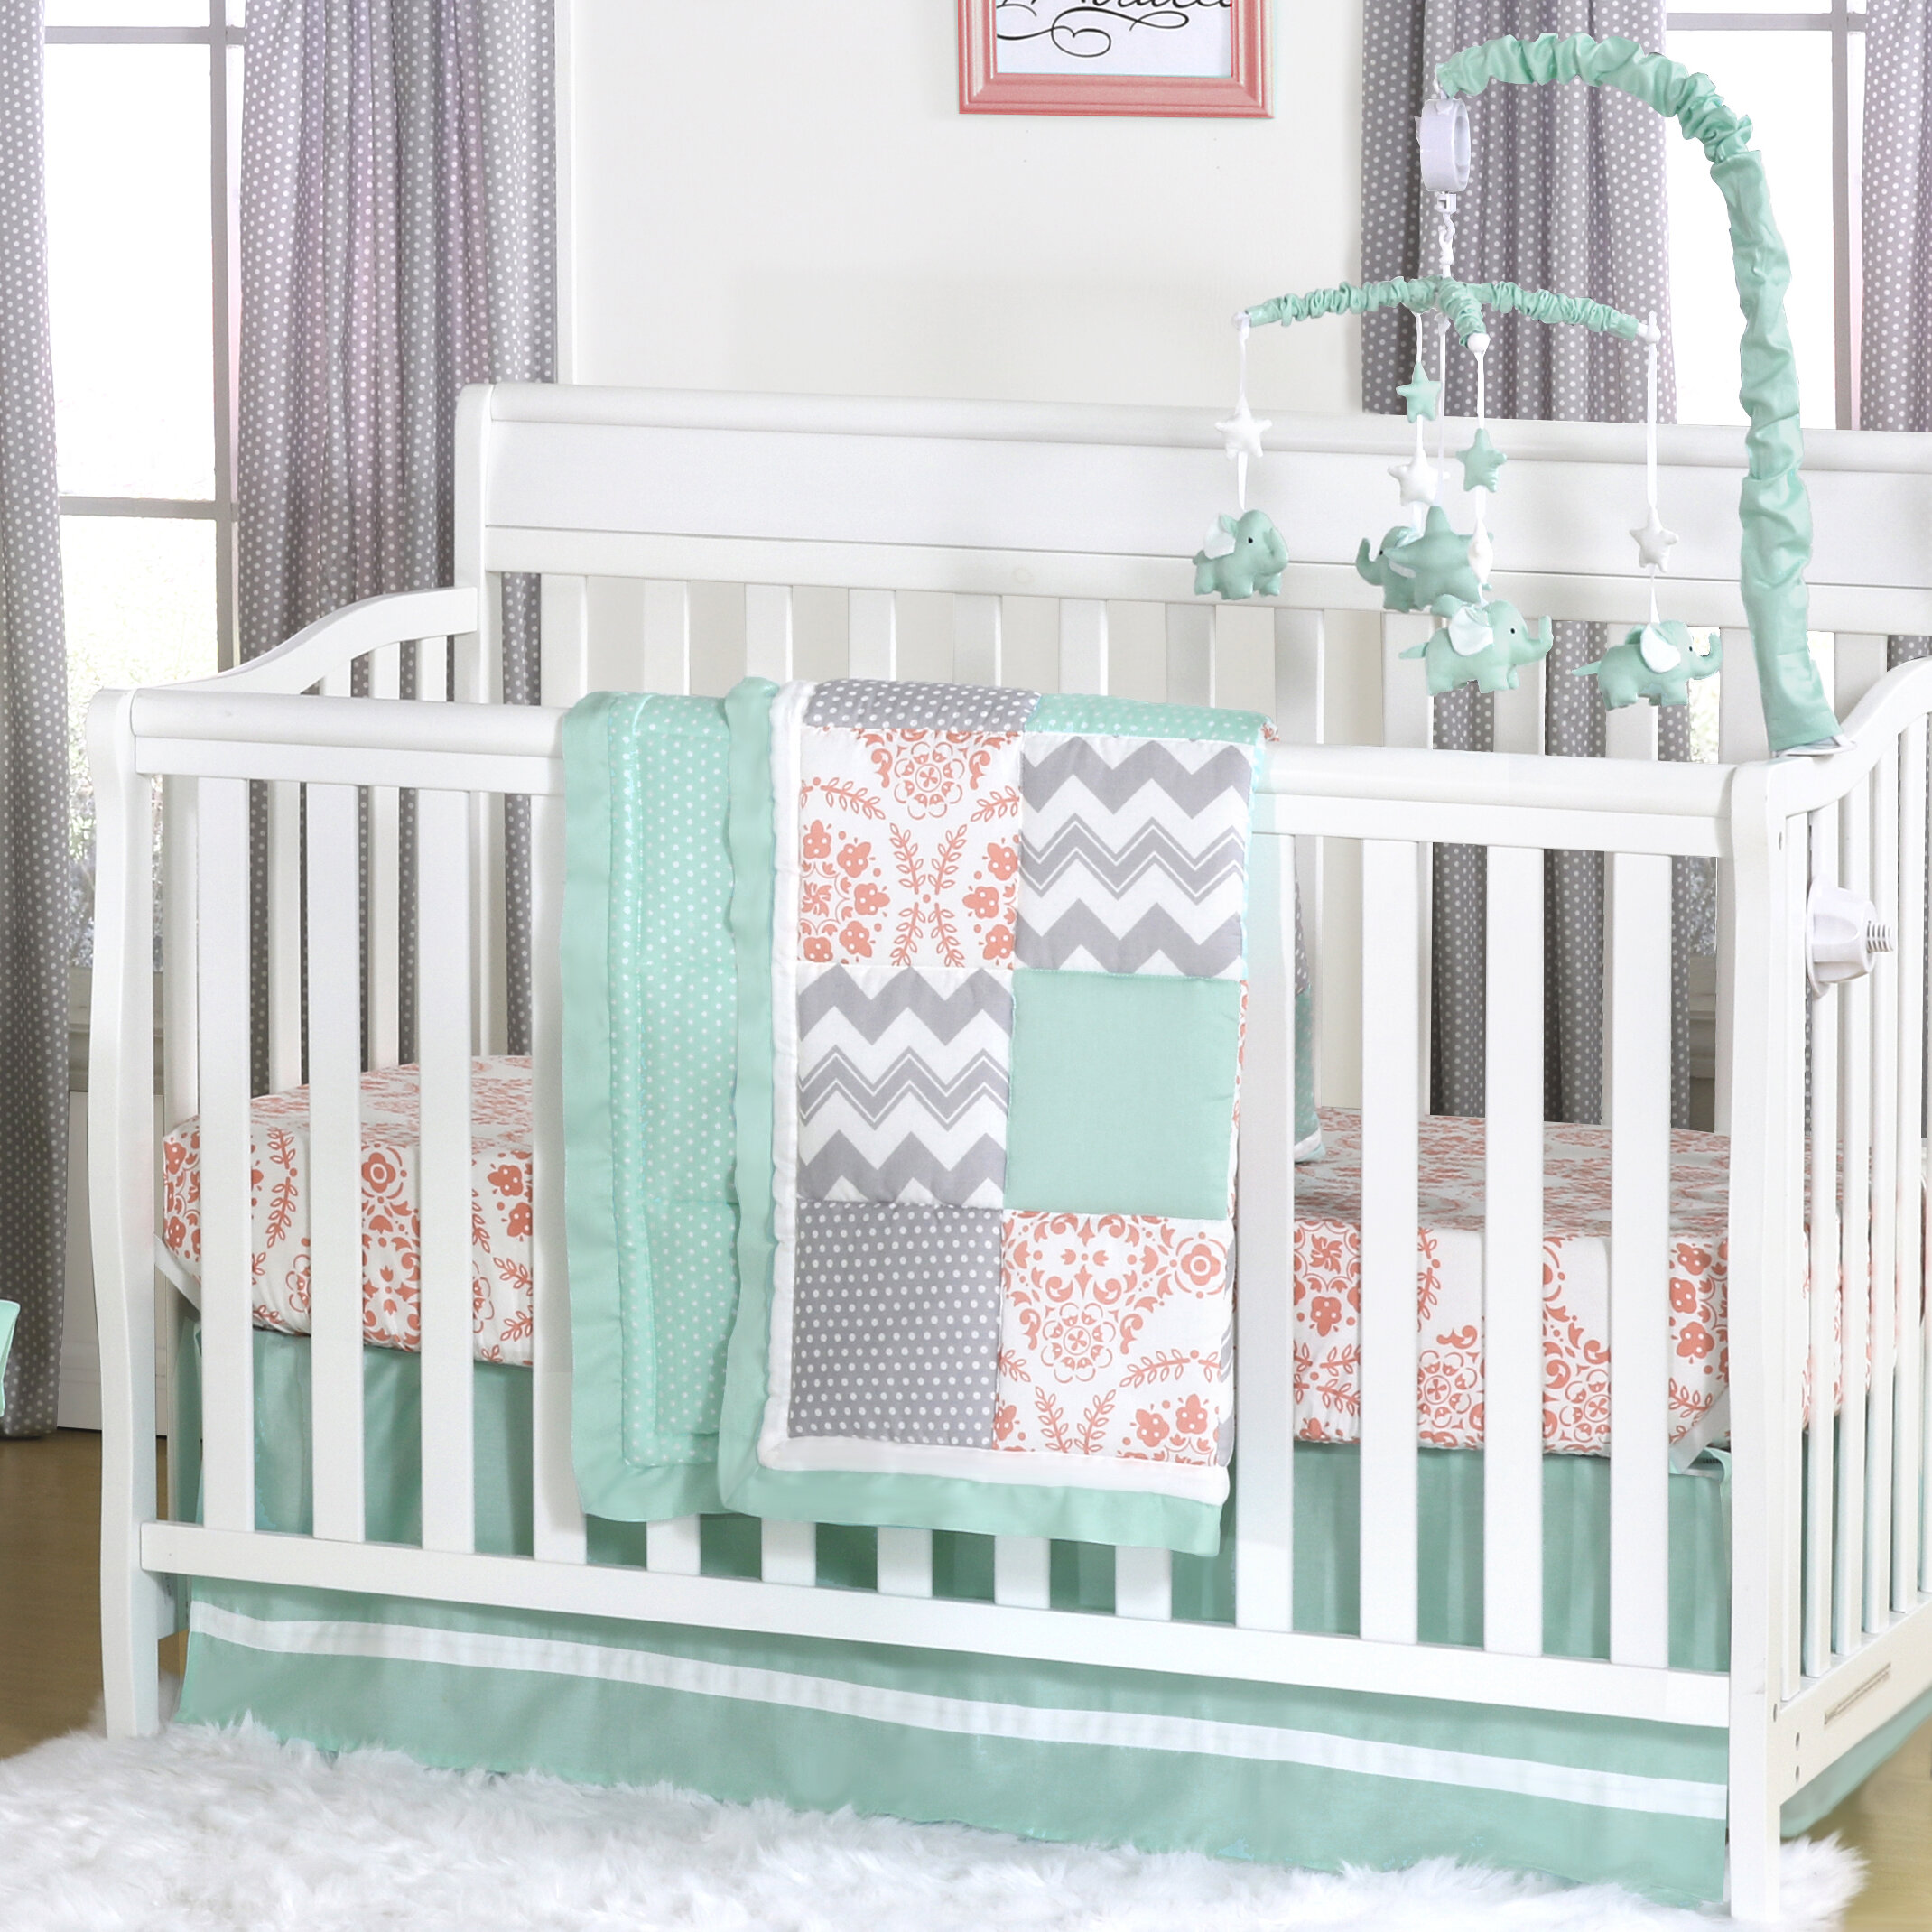 White Tailored Crib Skirt with Coral Pink /& Mint Green Trim by The Peanut Shell